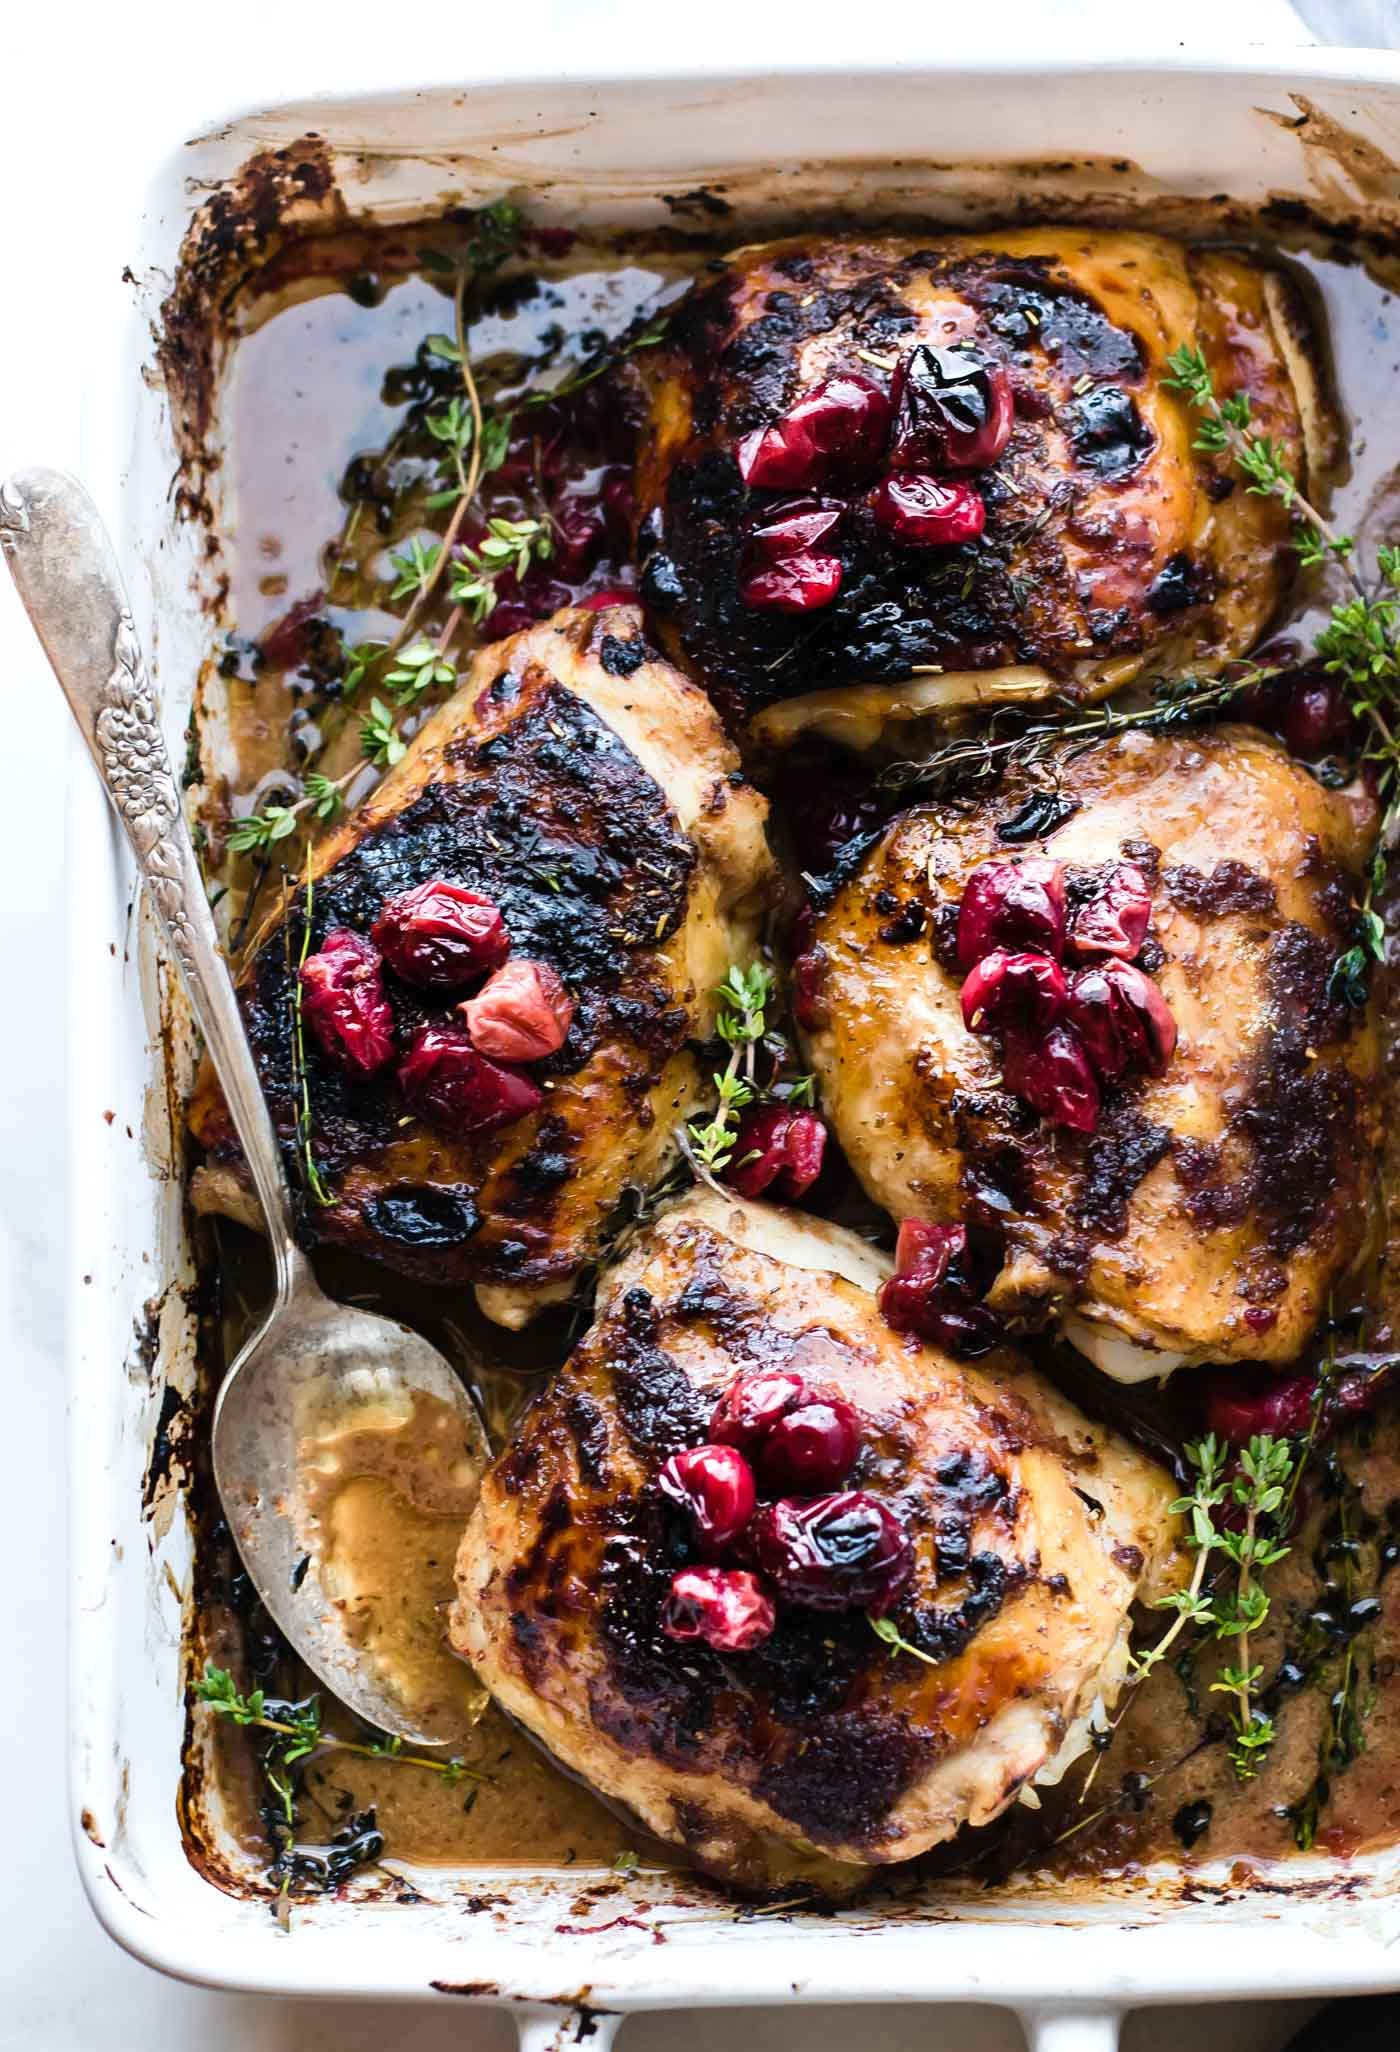 15 Healthy Christmas Food Recipes - Best Healthy Holiday Treats, Snacks and Dinner Ideas